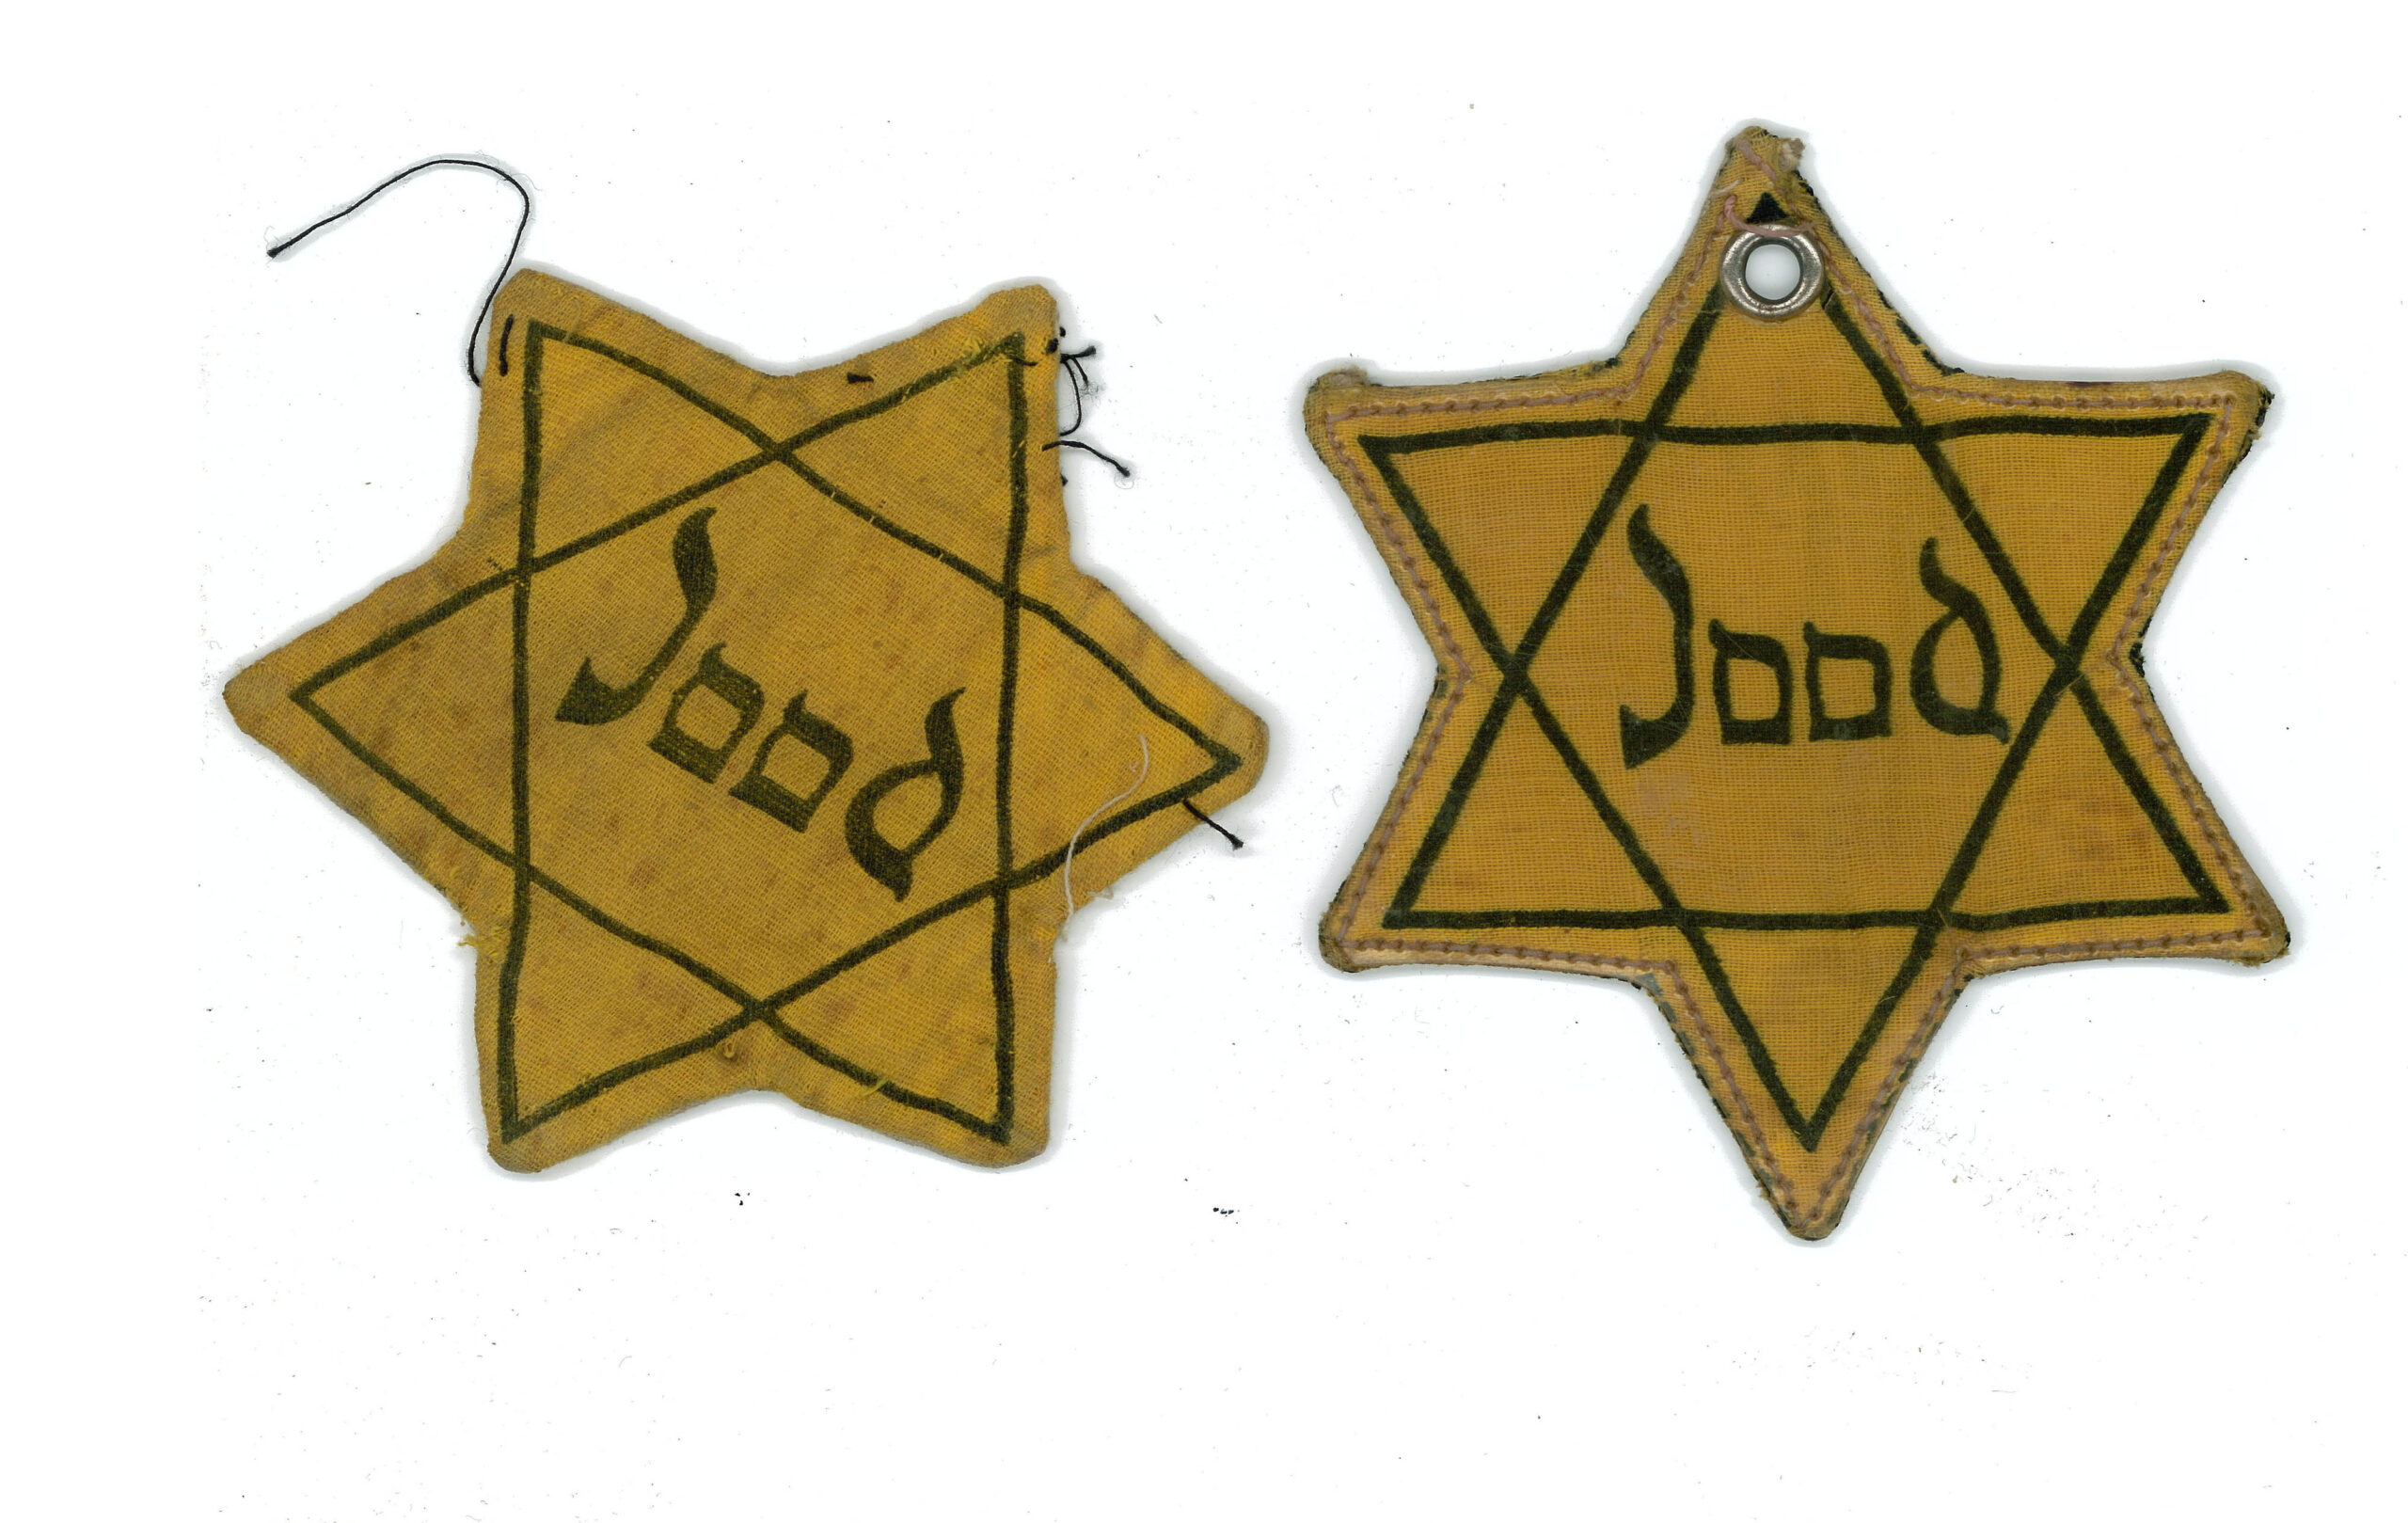 Holocaust survivor's family ran factory that churned out yellow stars marking Jews for death